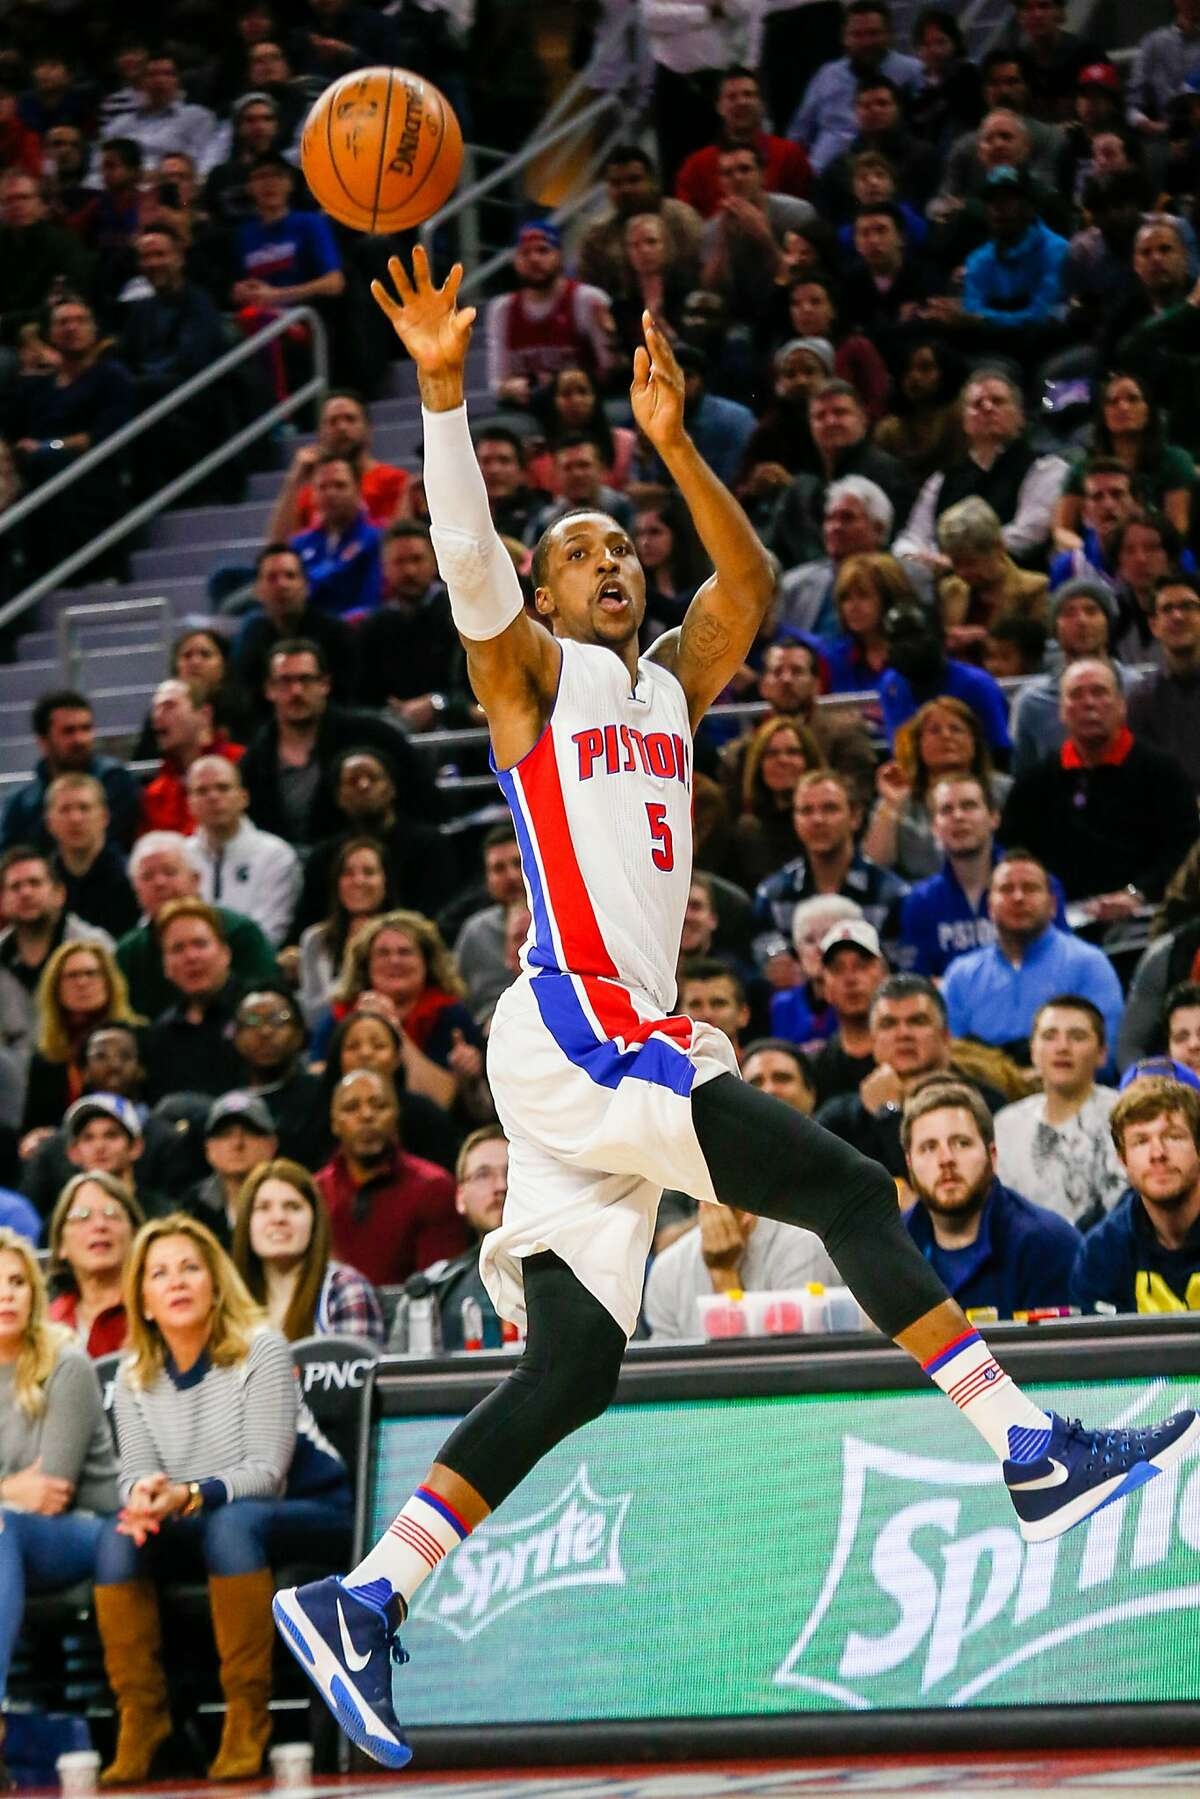 The Detroit Pistons' Kentavius Caldwell-Pope scores against the Golden State Warriors during the first quarter at the Palace of Auburn Hills on Saturday, Jan. 16, 2016, in Auburn Hills, Mich. (Kimberly P. Mitchell/Detroit Free Press/TNS)